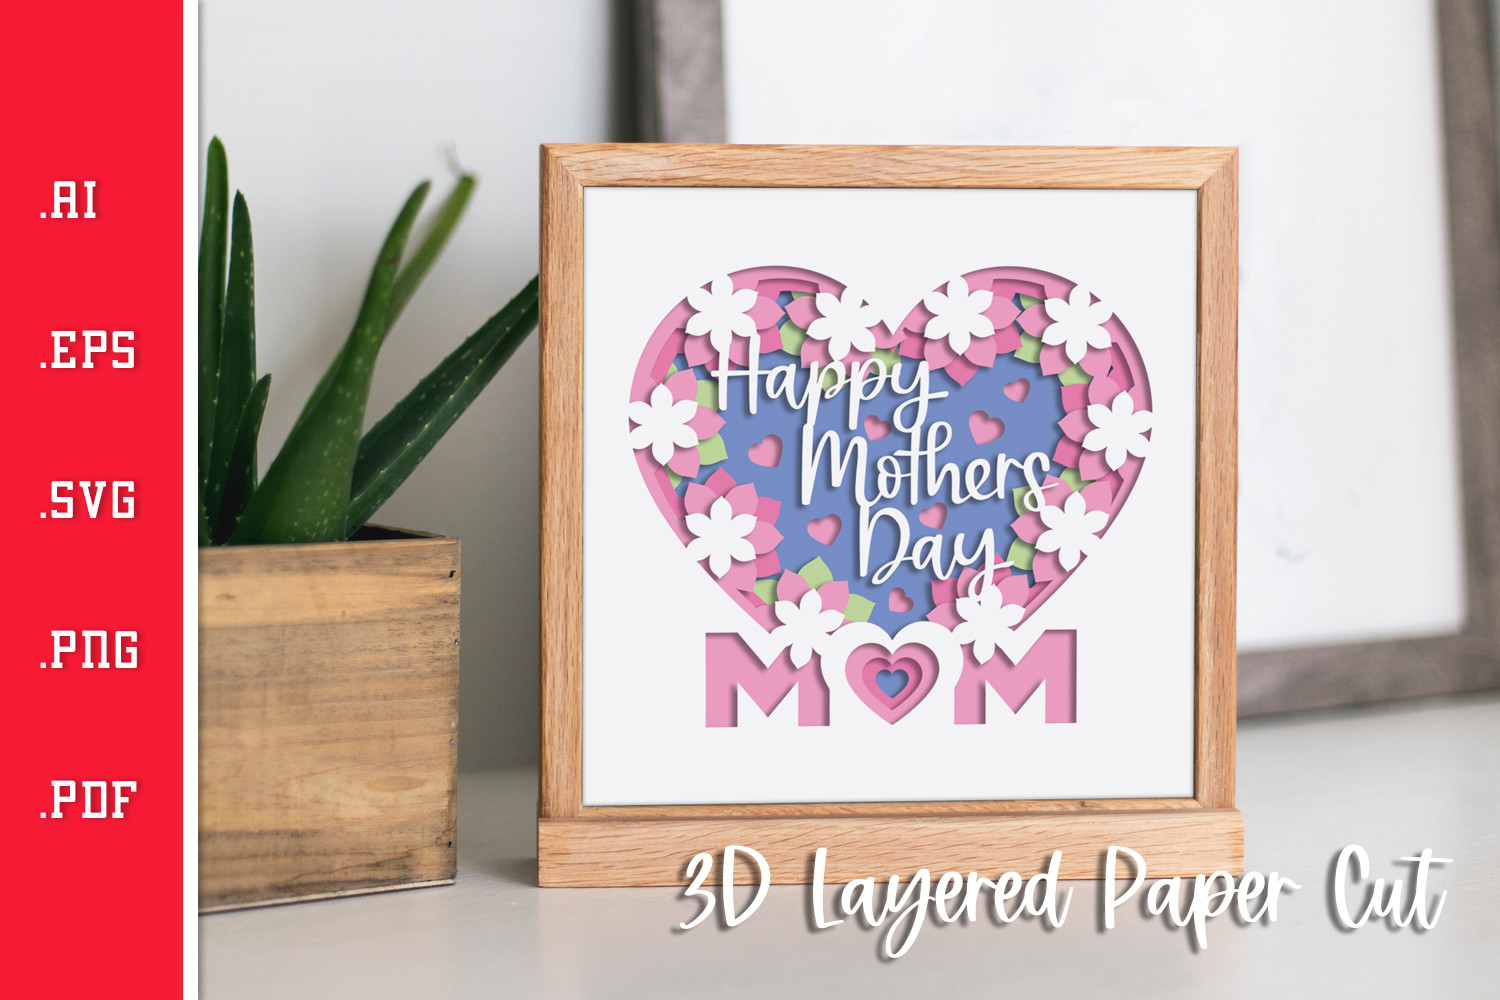 Happy Mothers Day 3D Layered Paper Cut SVG File